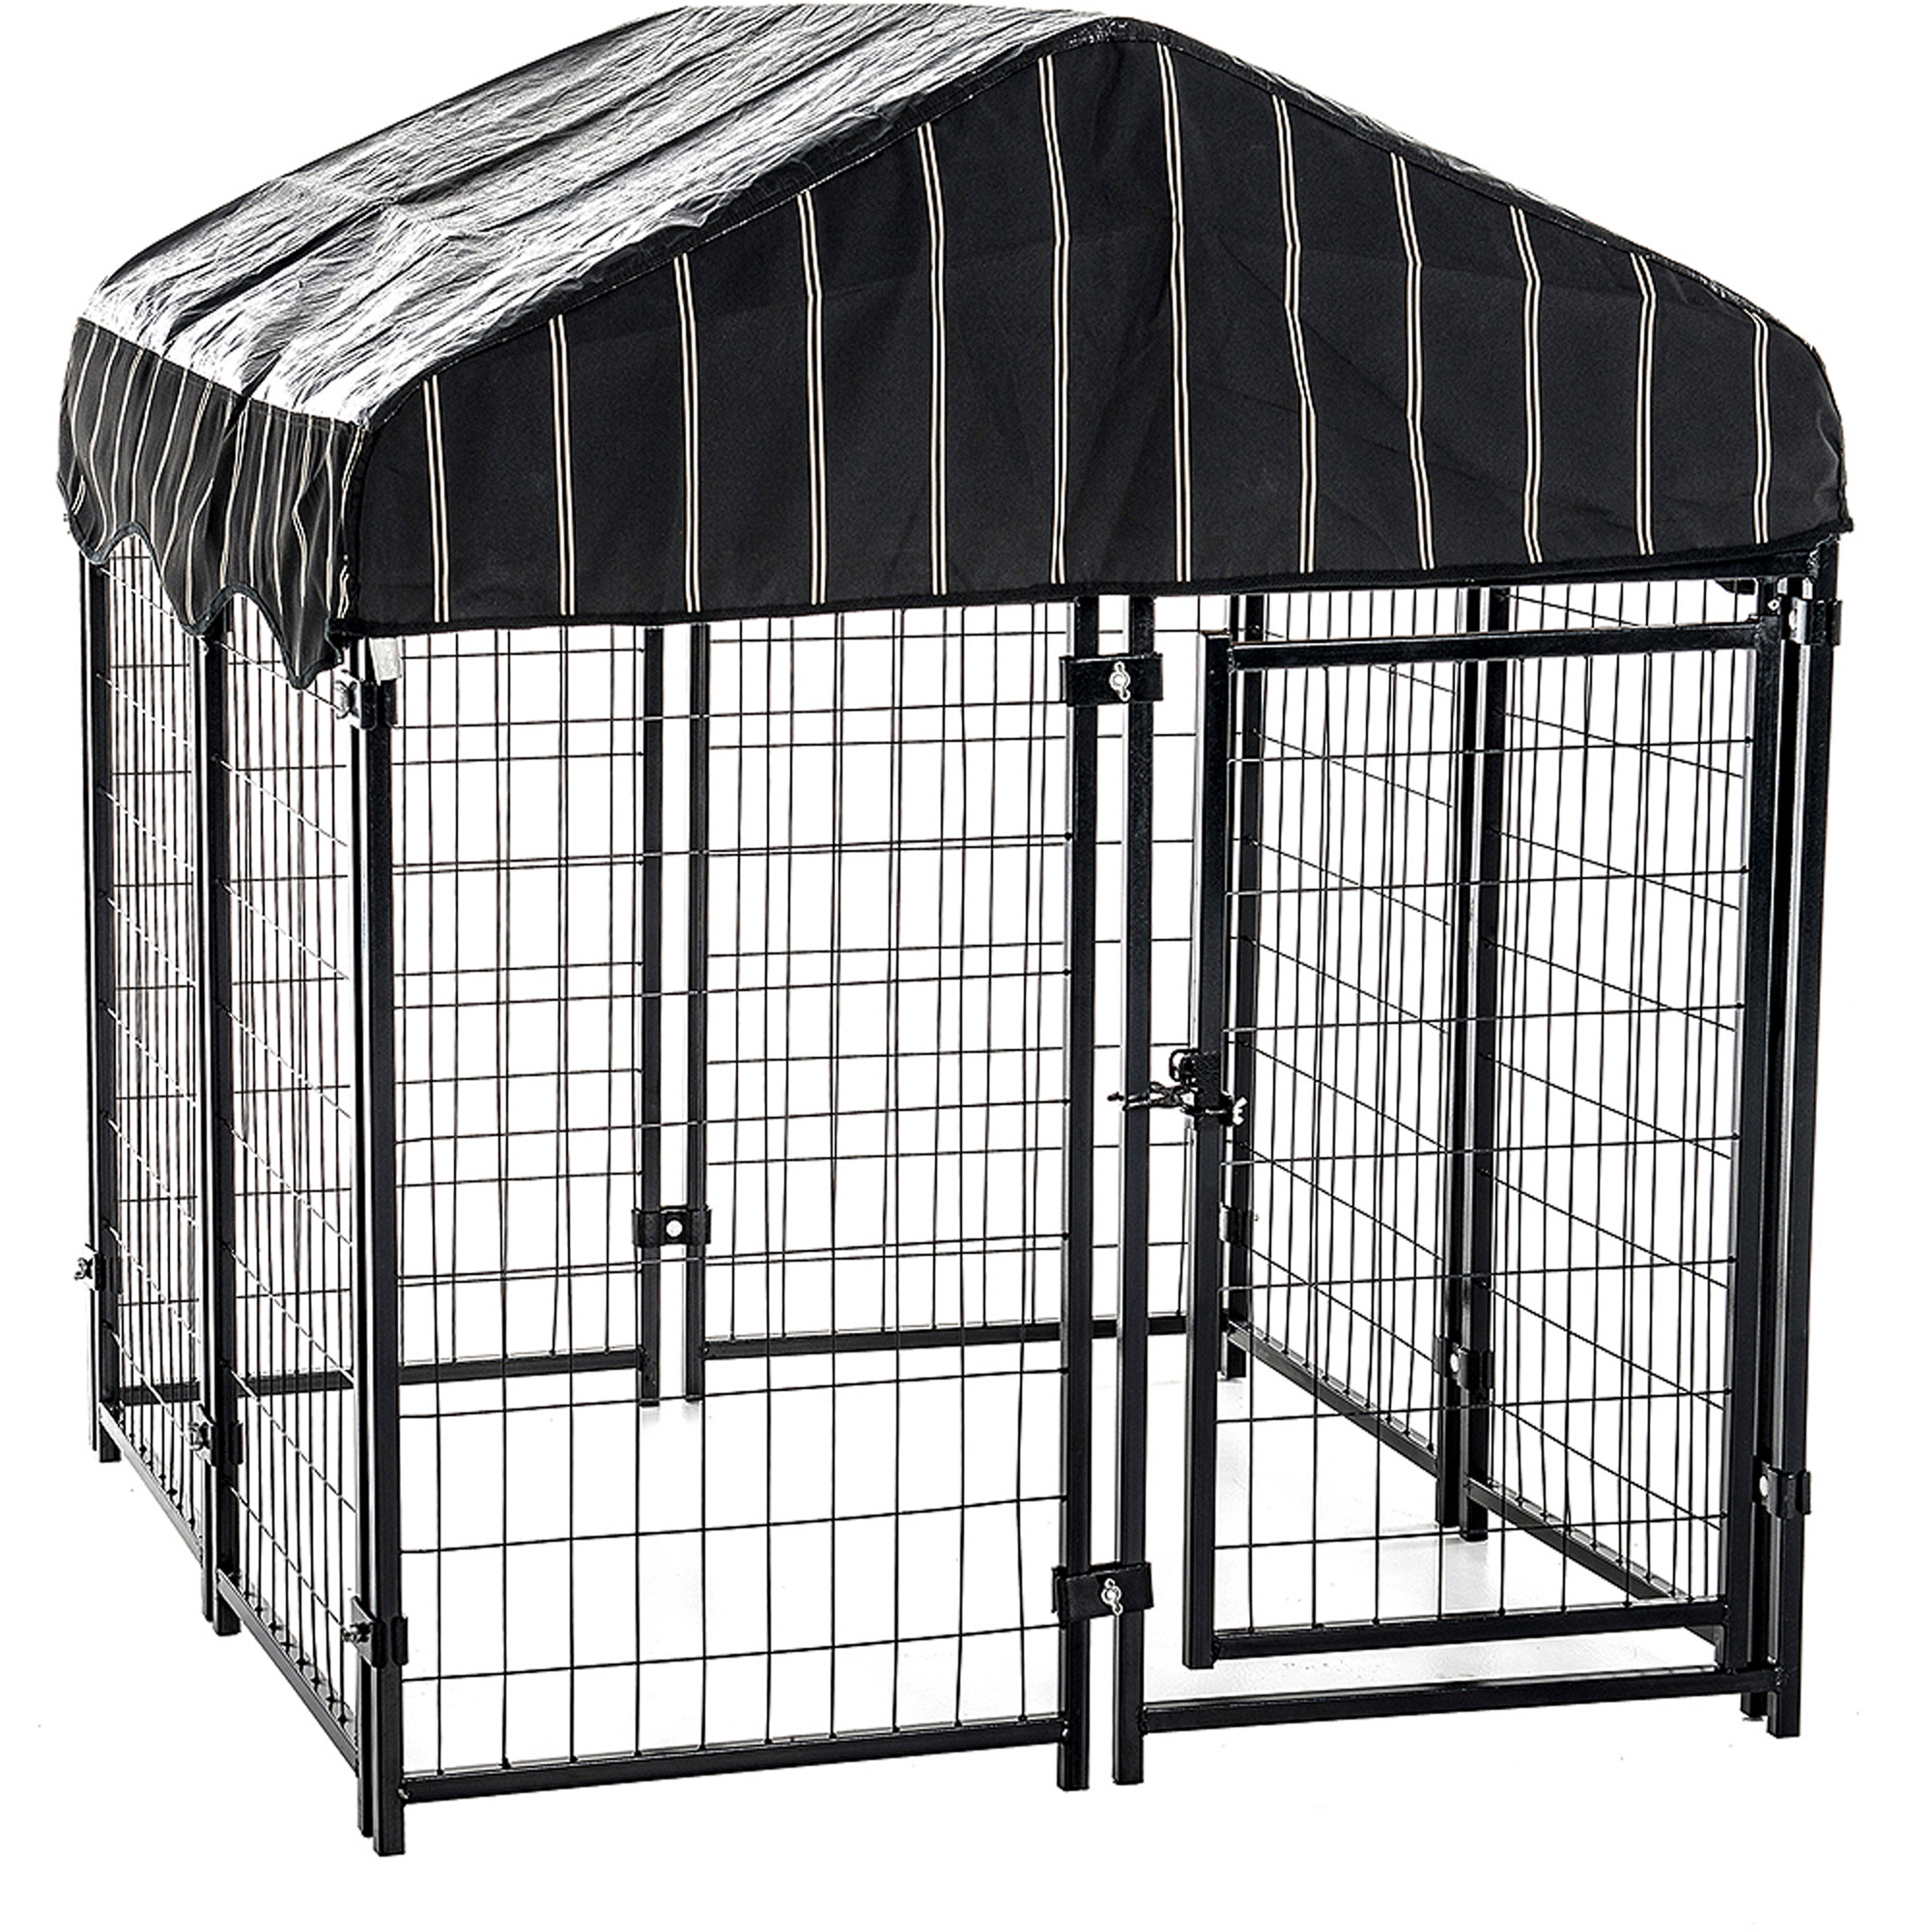 "Lucky Dog 52""H x 4'W x 4'L Pet Resort Kennel with Cover"